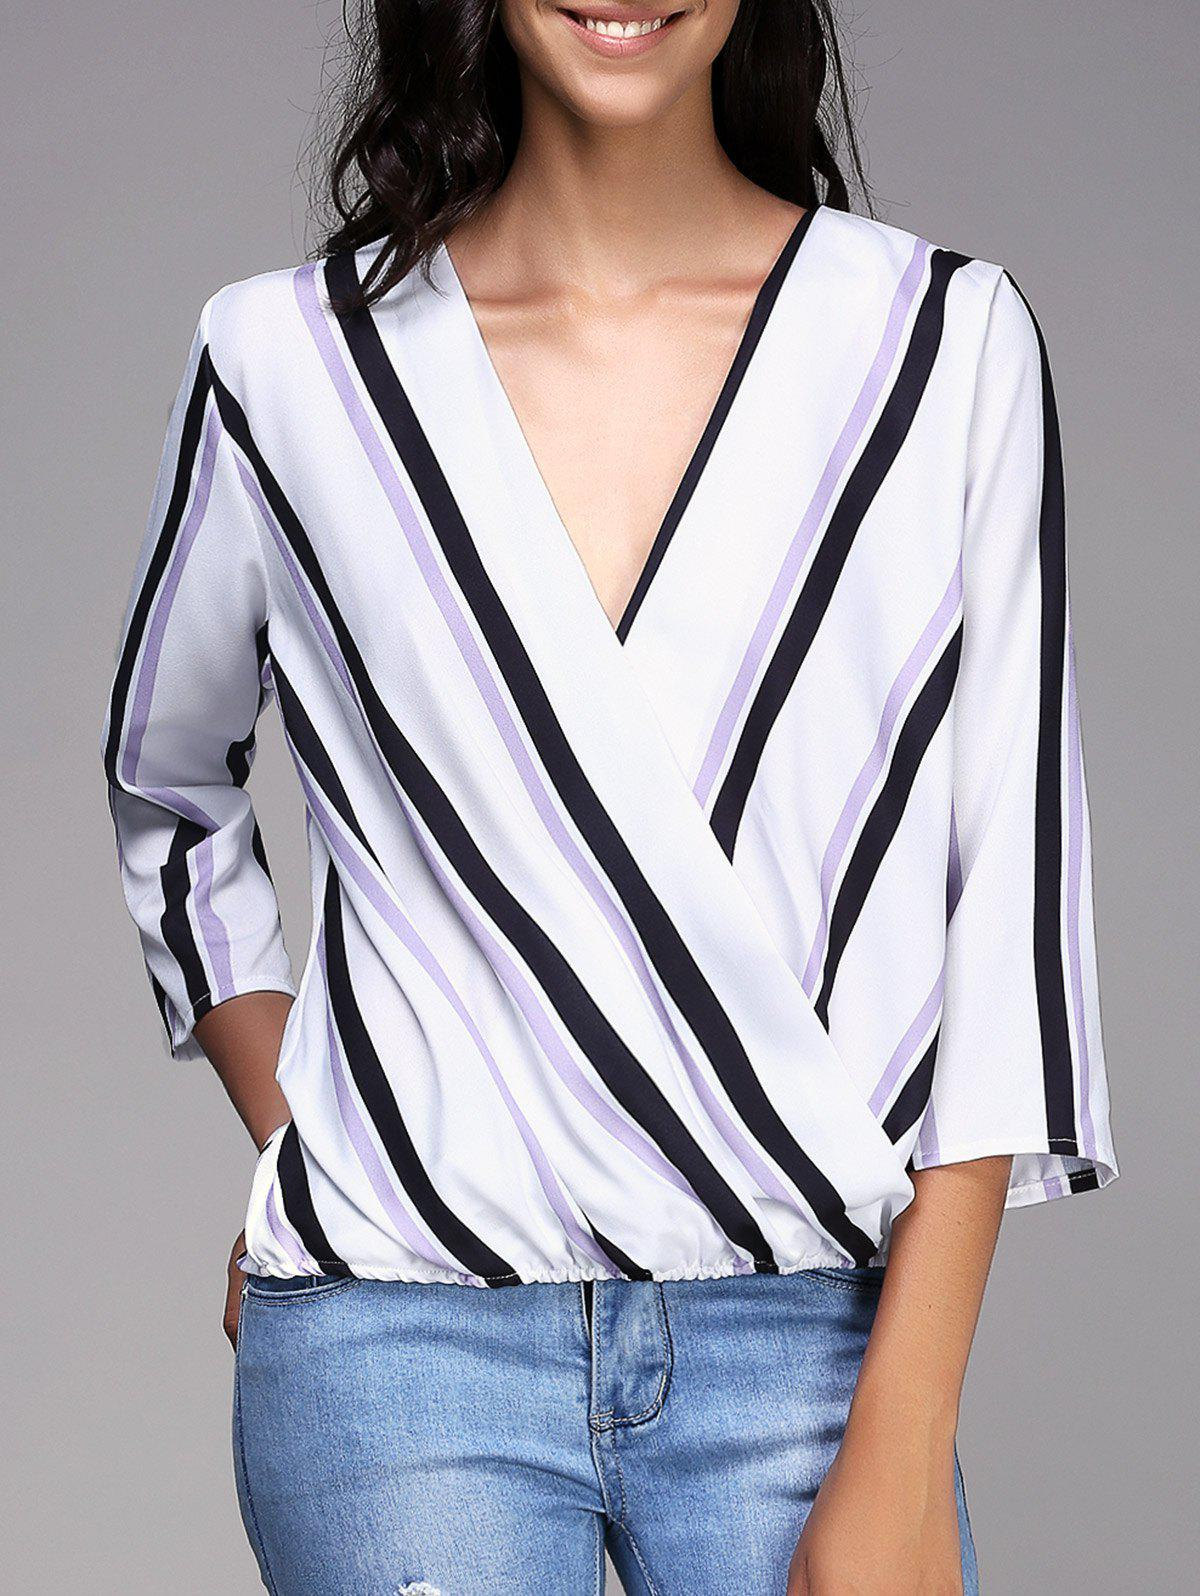 Stylish Plunging 3/4 SleevevStriped Neck Women's Top